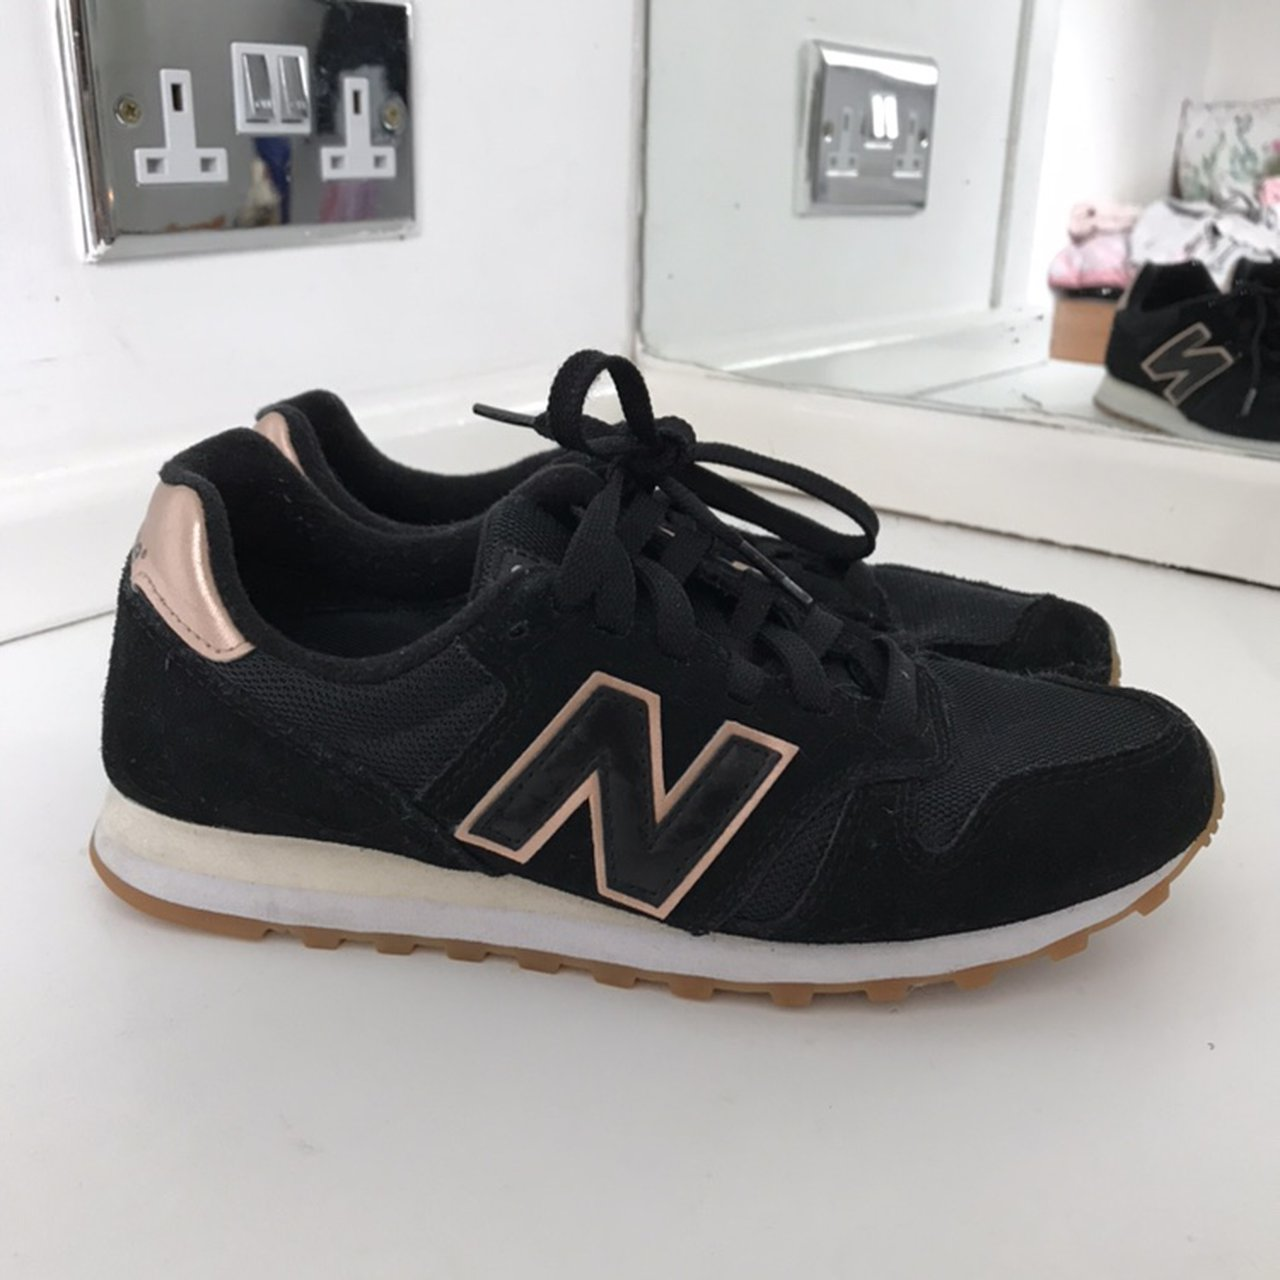 new balance 373 womens black and rose gold